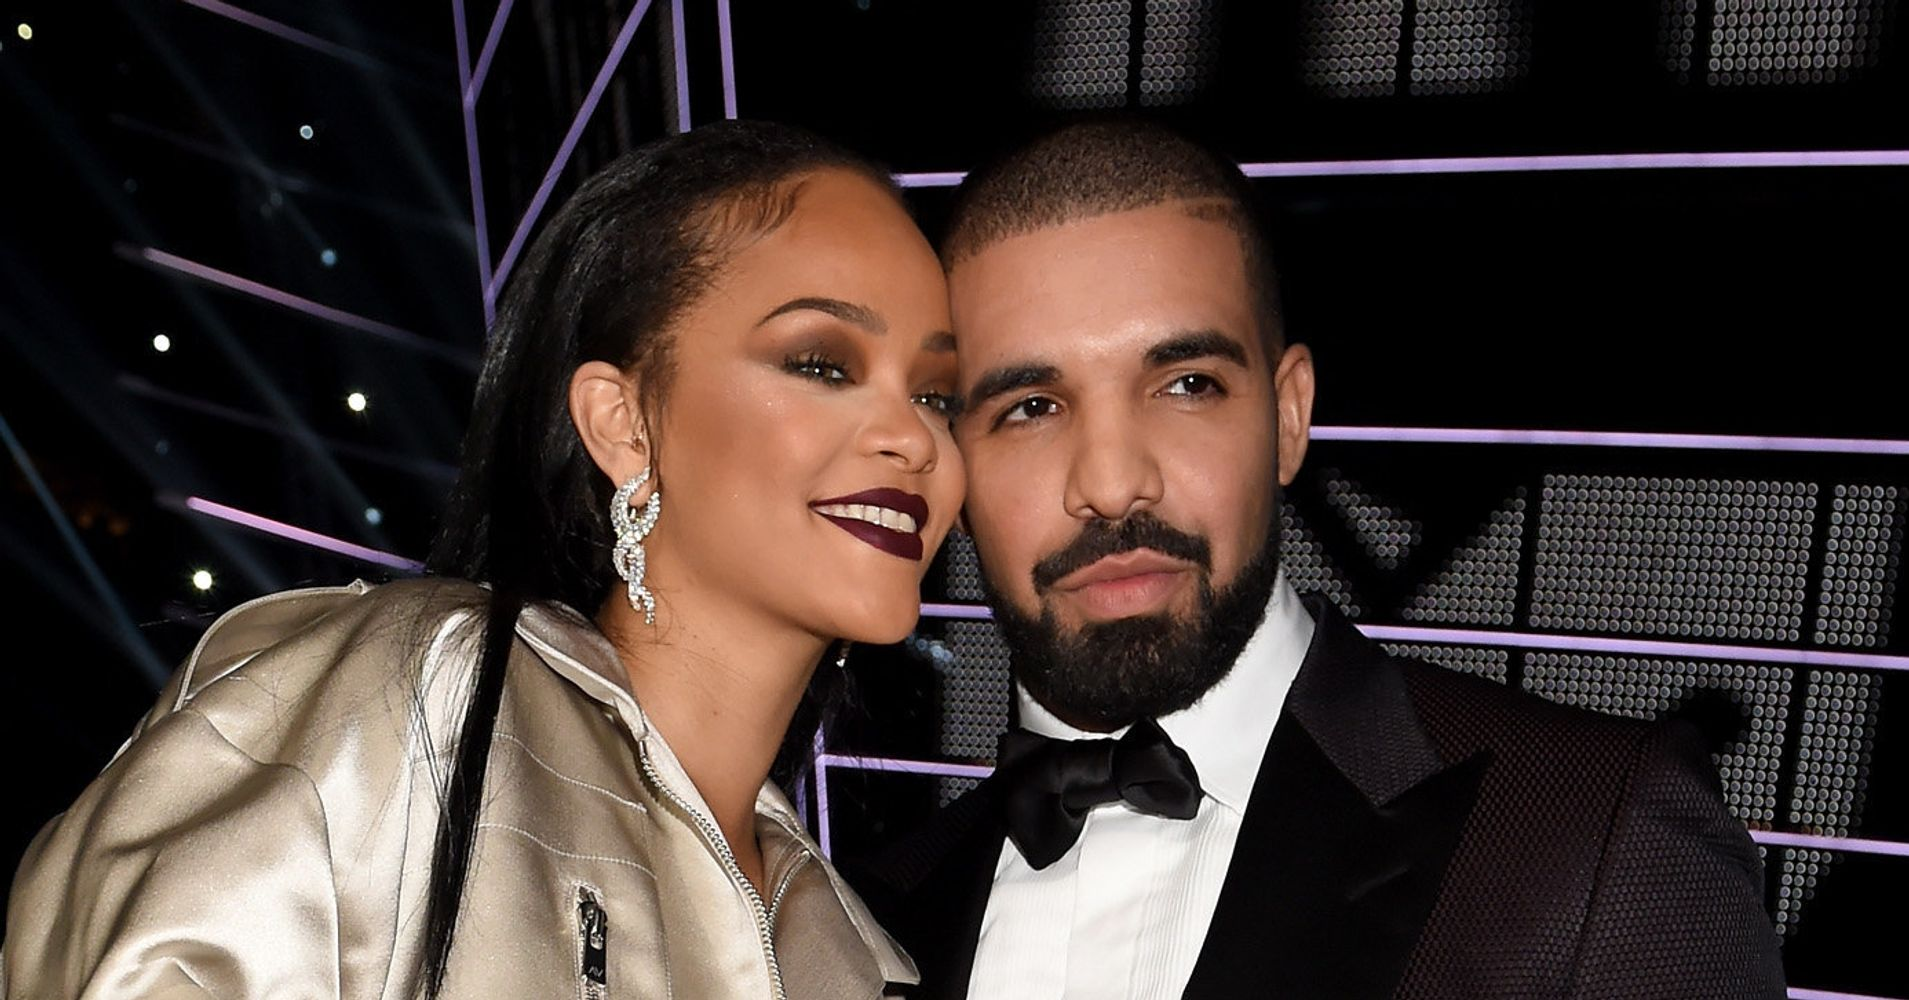 drake and rihanna dating officially